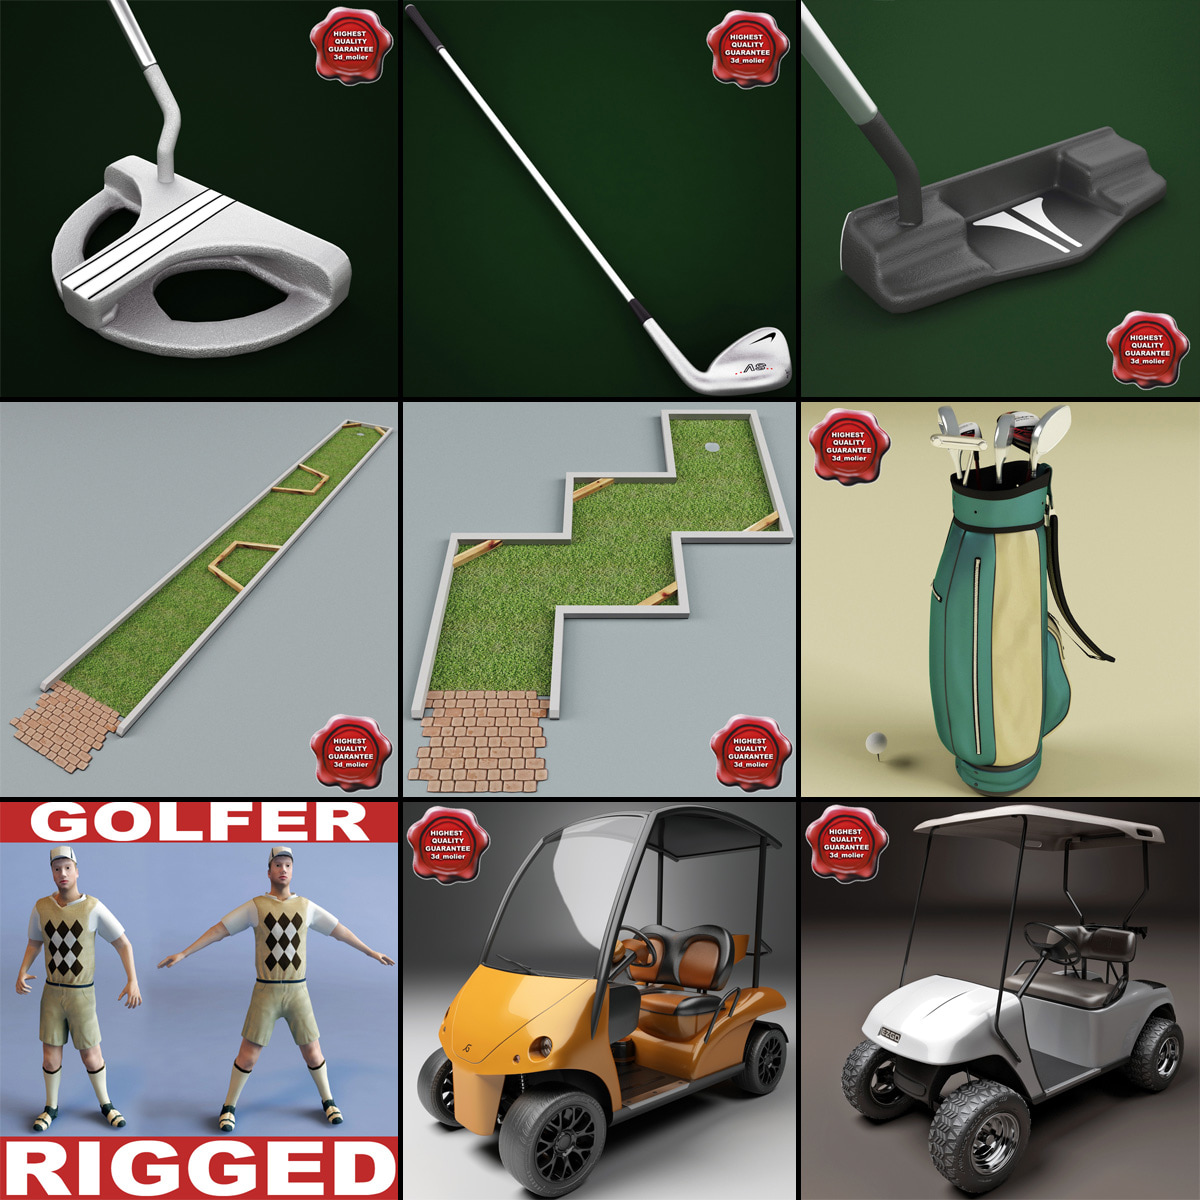 Golf_Collection_V3_000.jpg